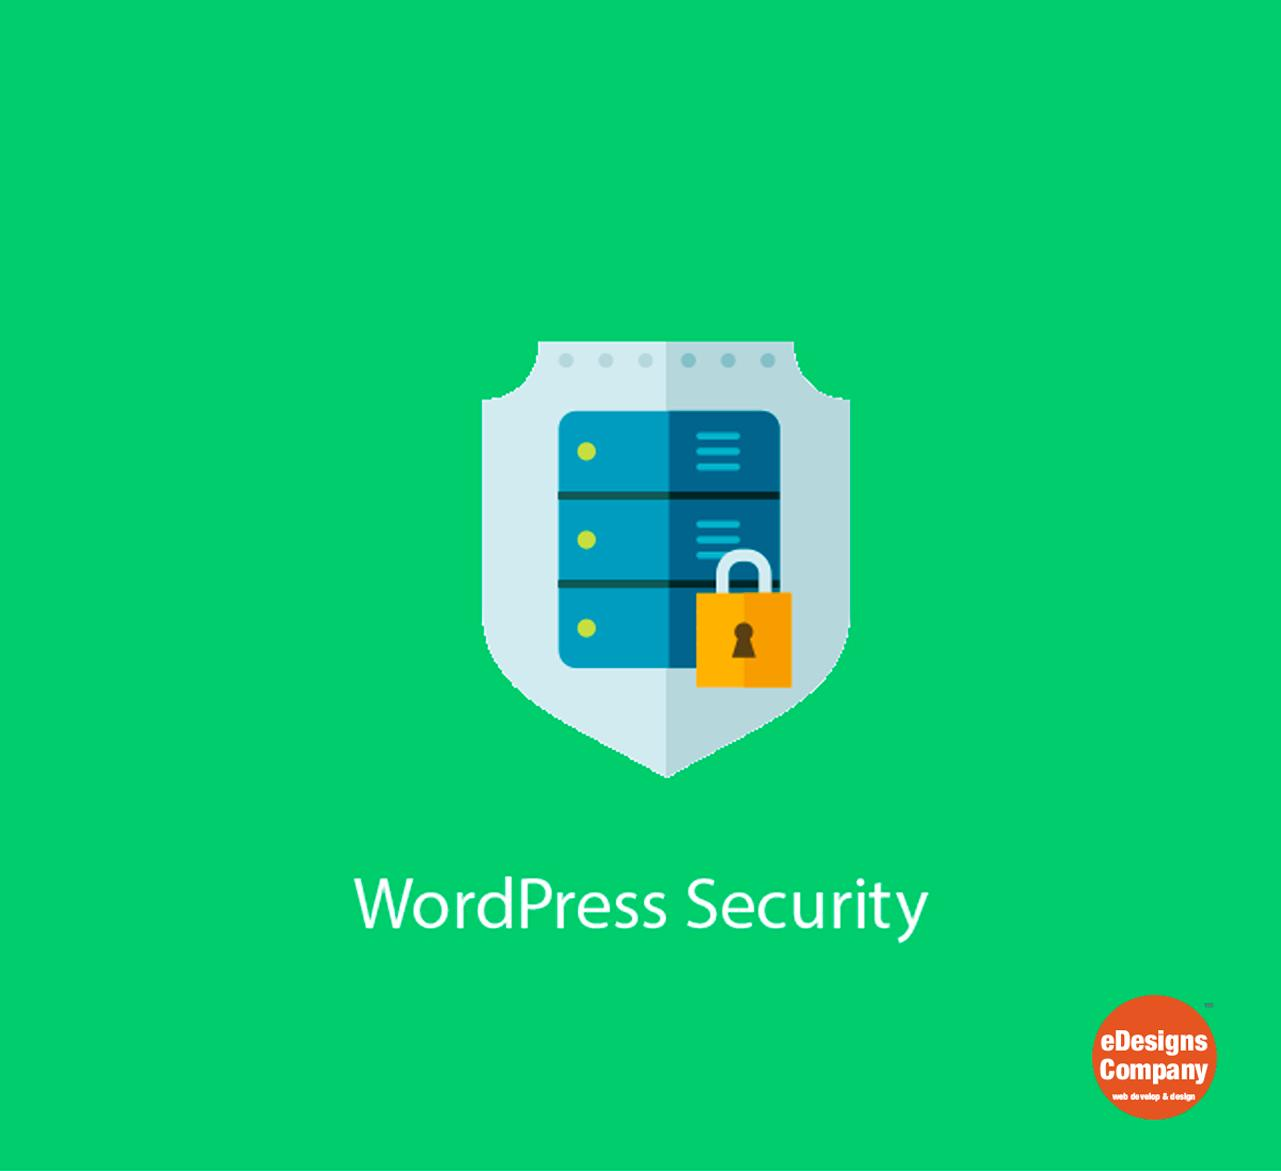 Express Wordpress Security Inspect by eDesignsCompany - 105047